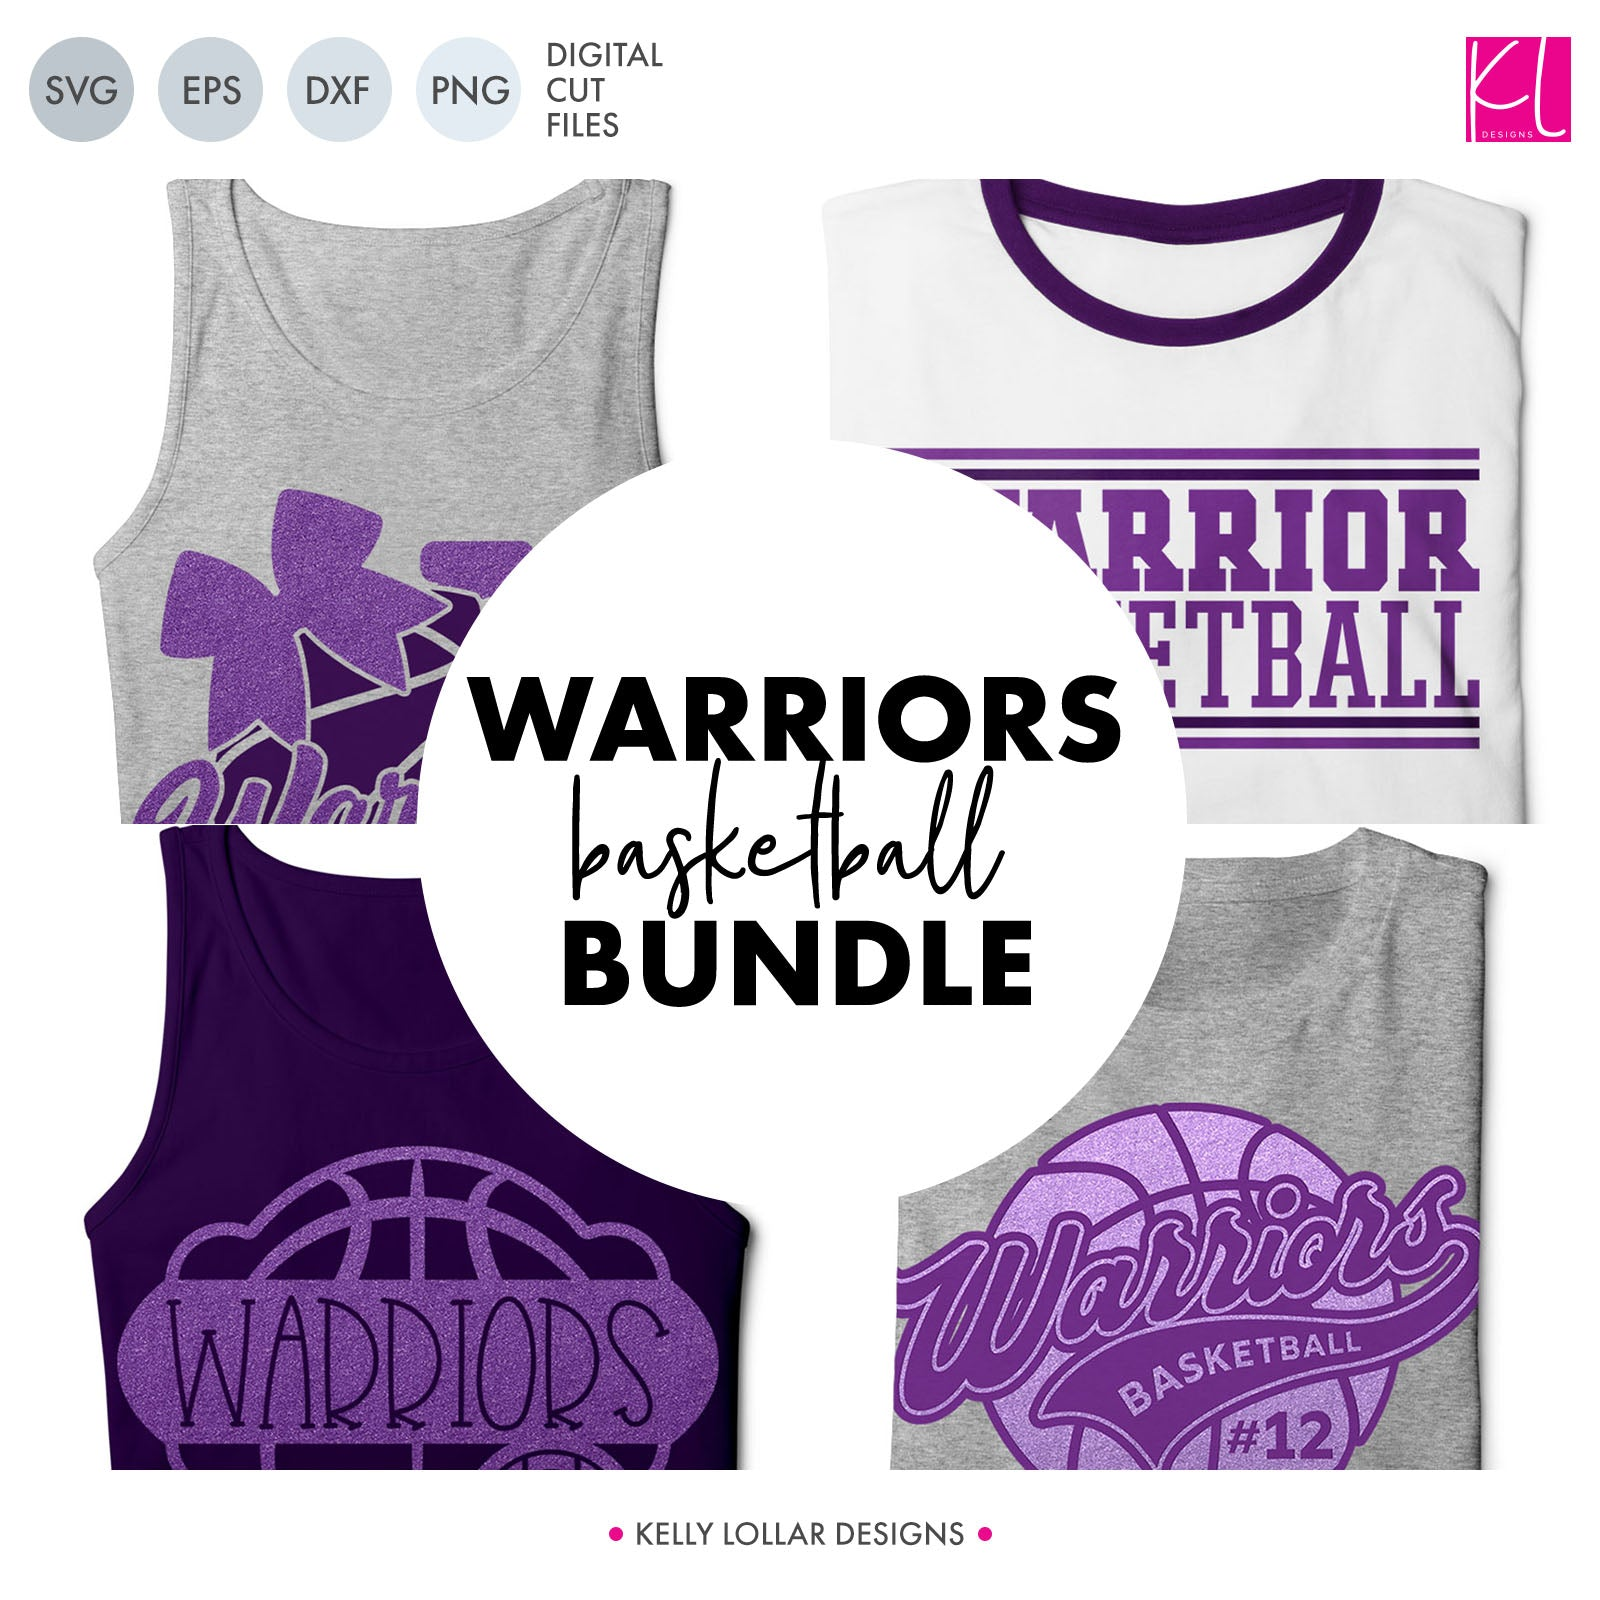 Warriors Basketball Bundle | SVG DXF EPS PNG Cut Files